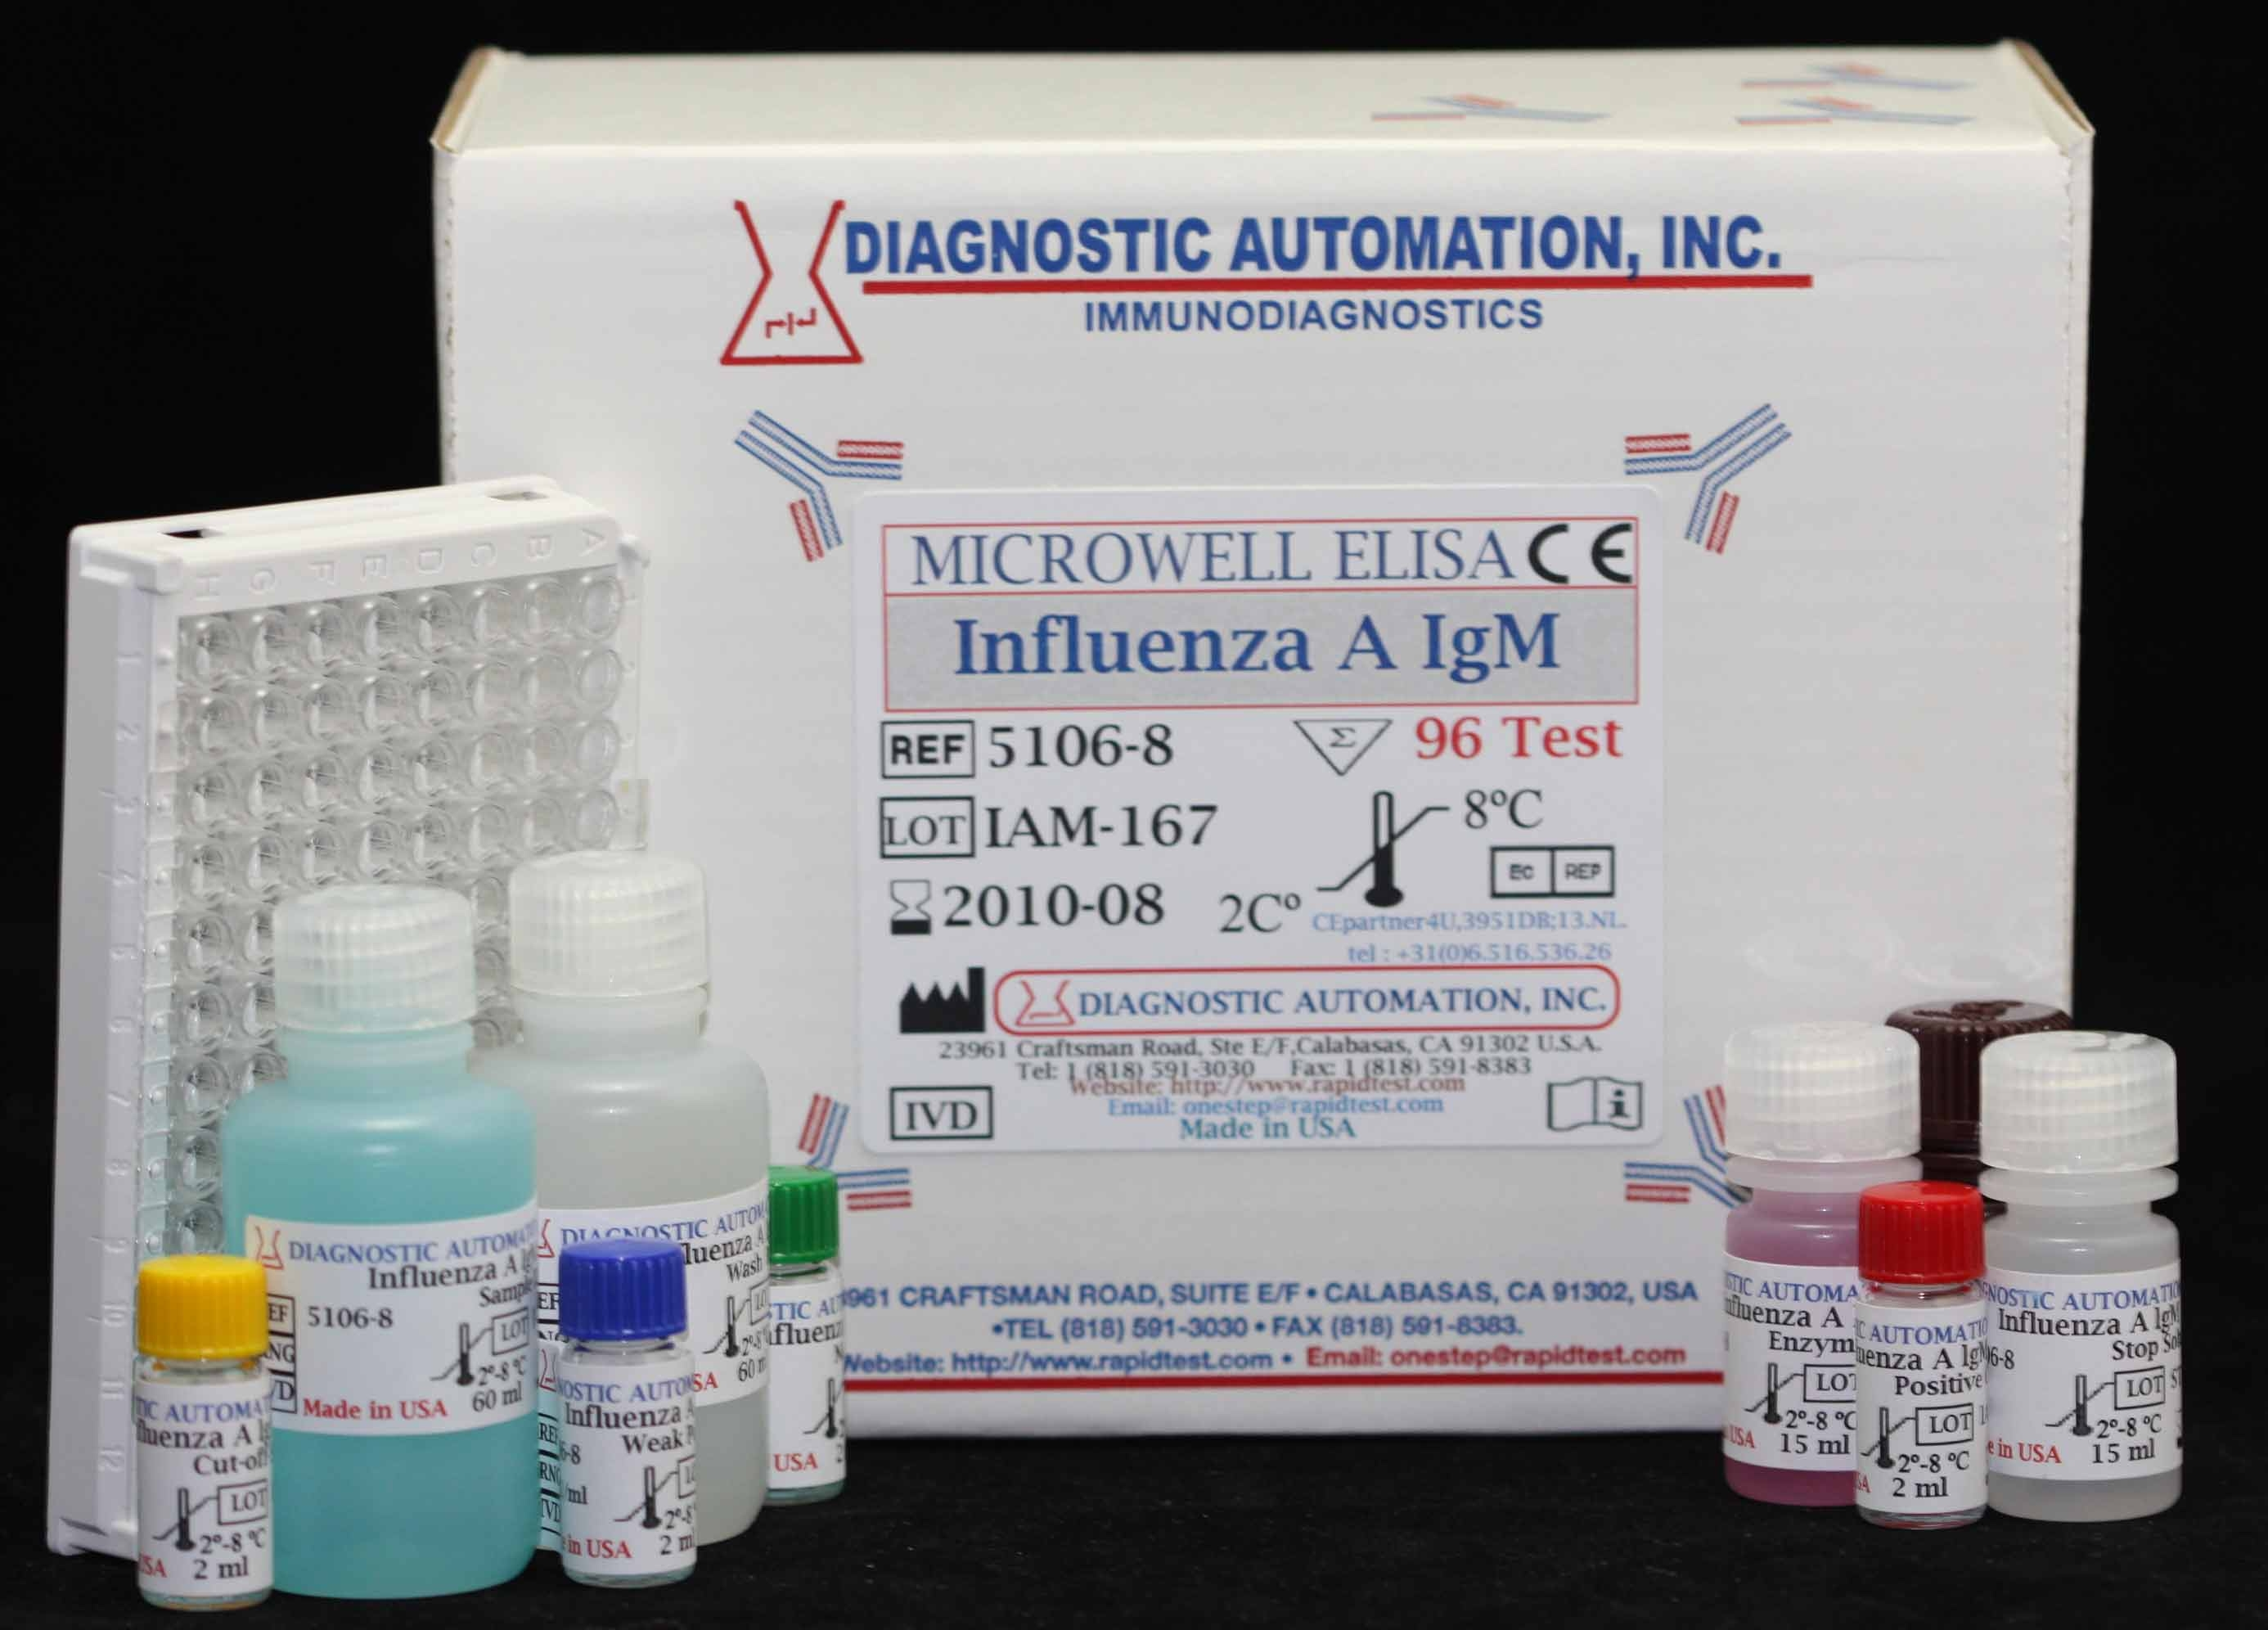 Influenza A IgM ELISA kit